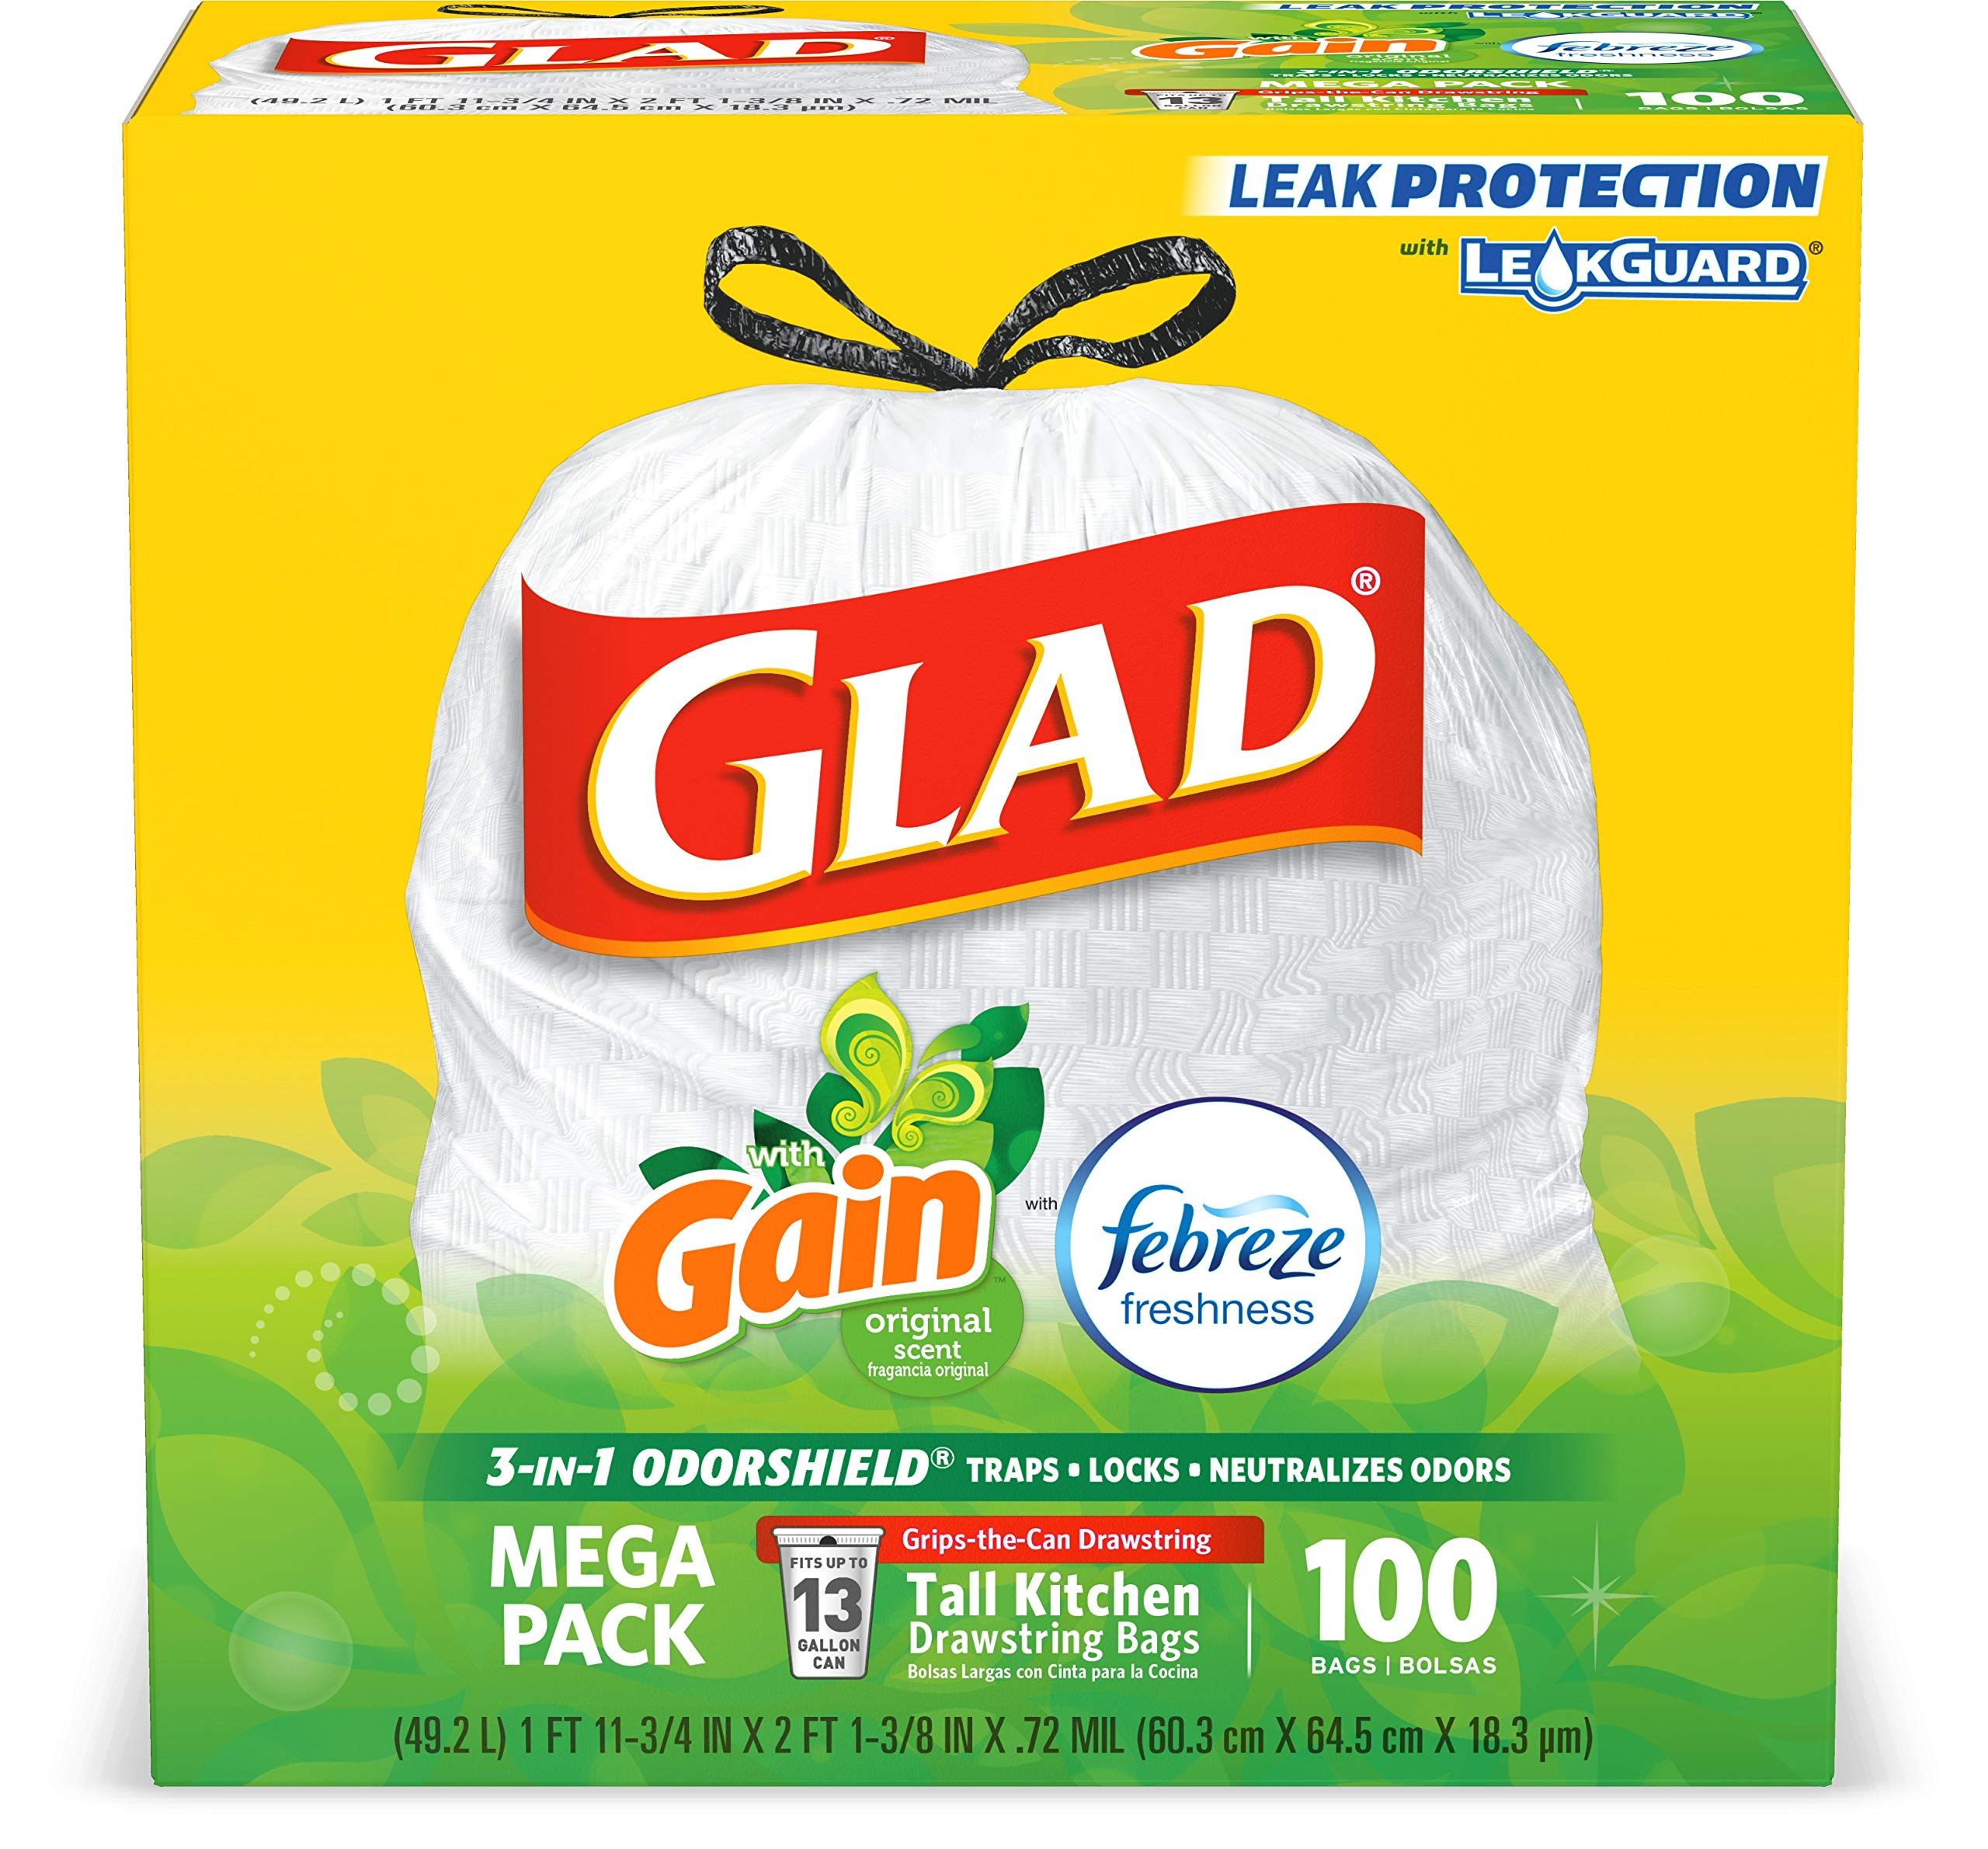 Glad Tall Kitchen Drawstring Trash Bags - OdorShield 13 Gallon White Trash Bag, Gain Original with Febreze Freshness - 100 Count by Glad